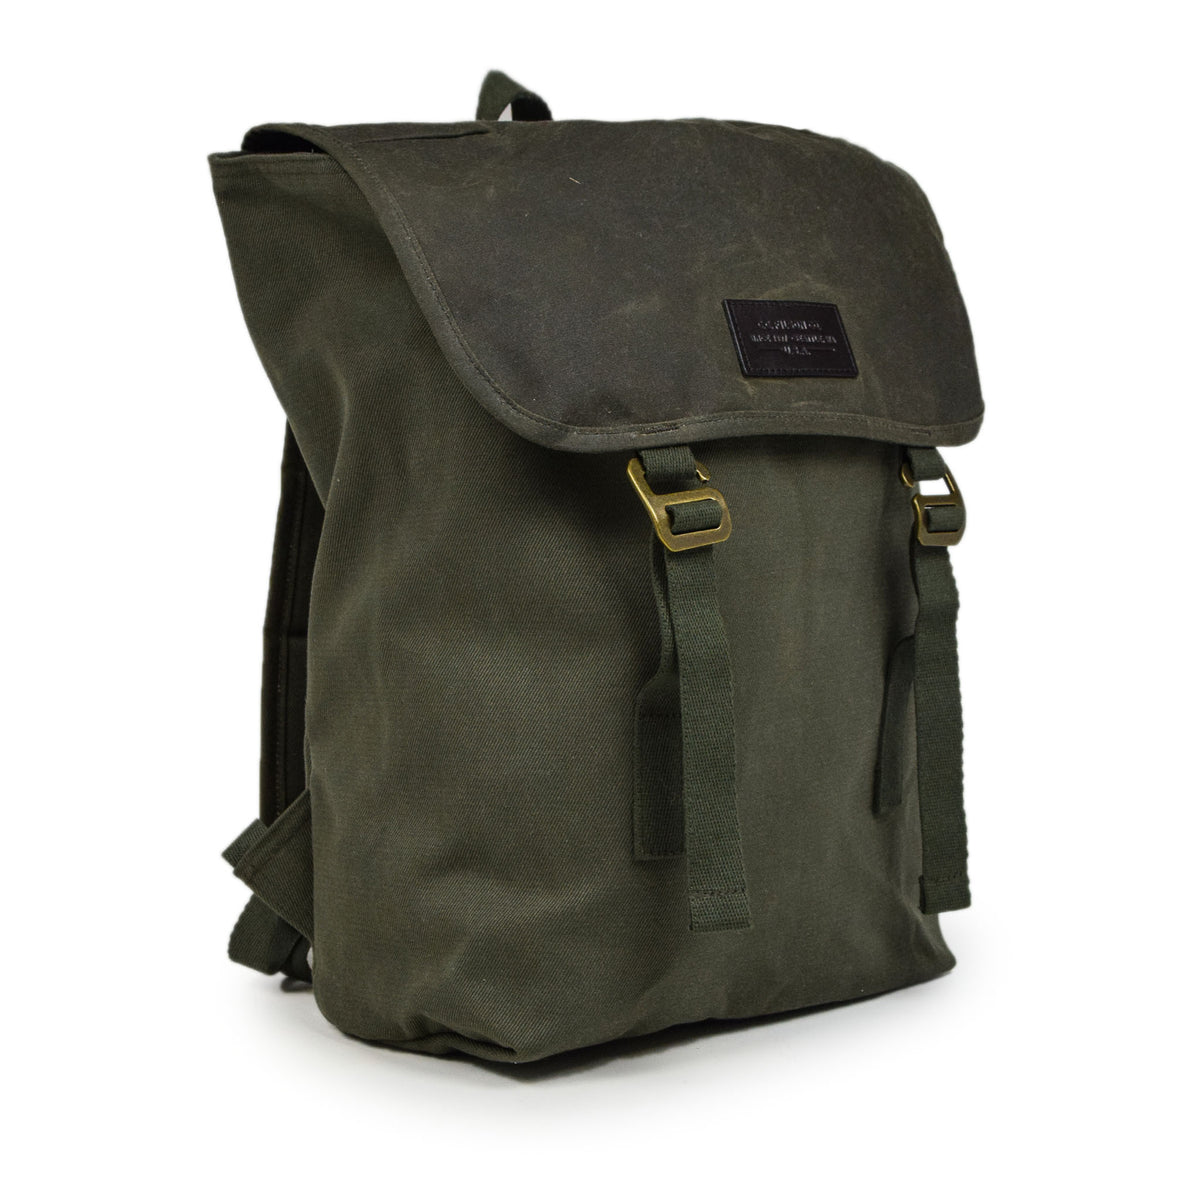 Filson Rugged Twill Ranger Backpack Otter Green Side